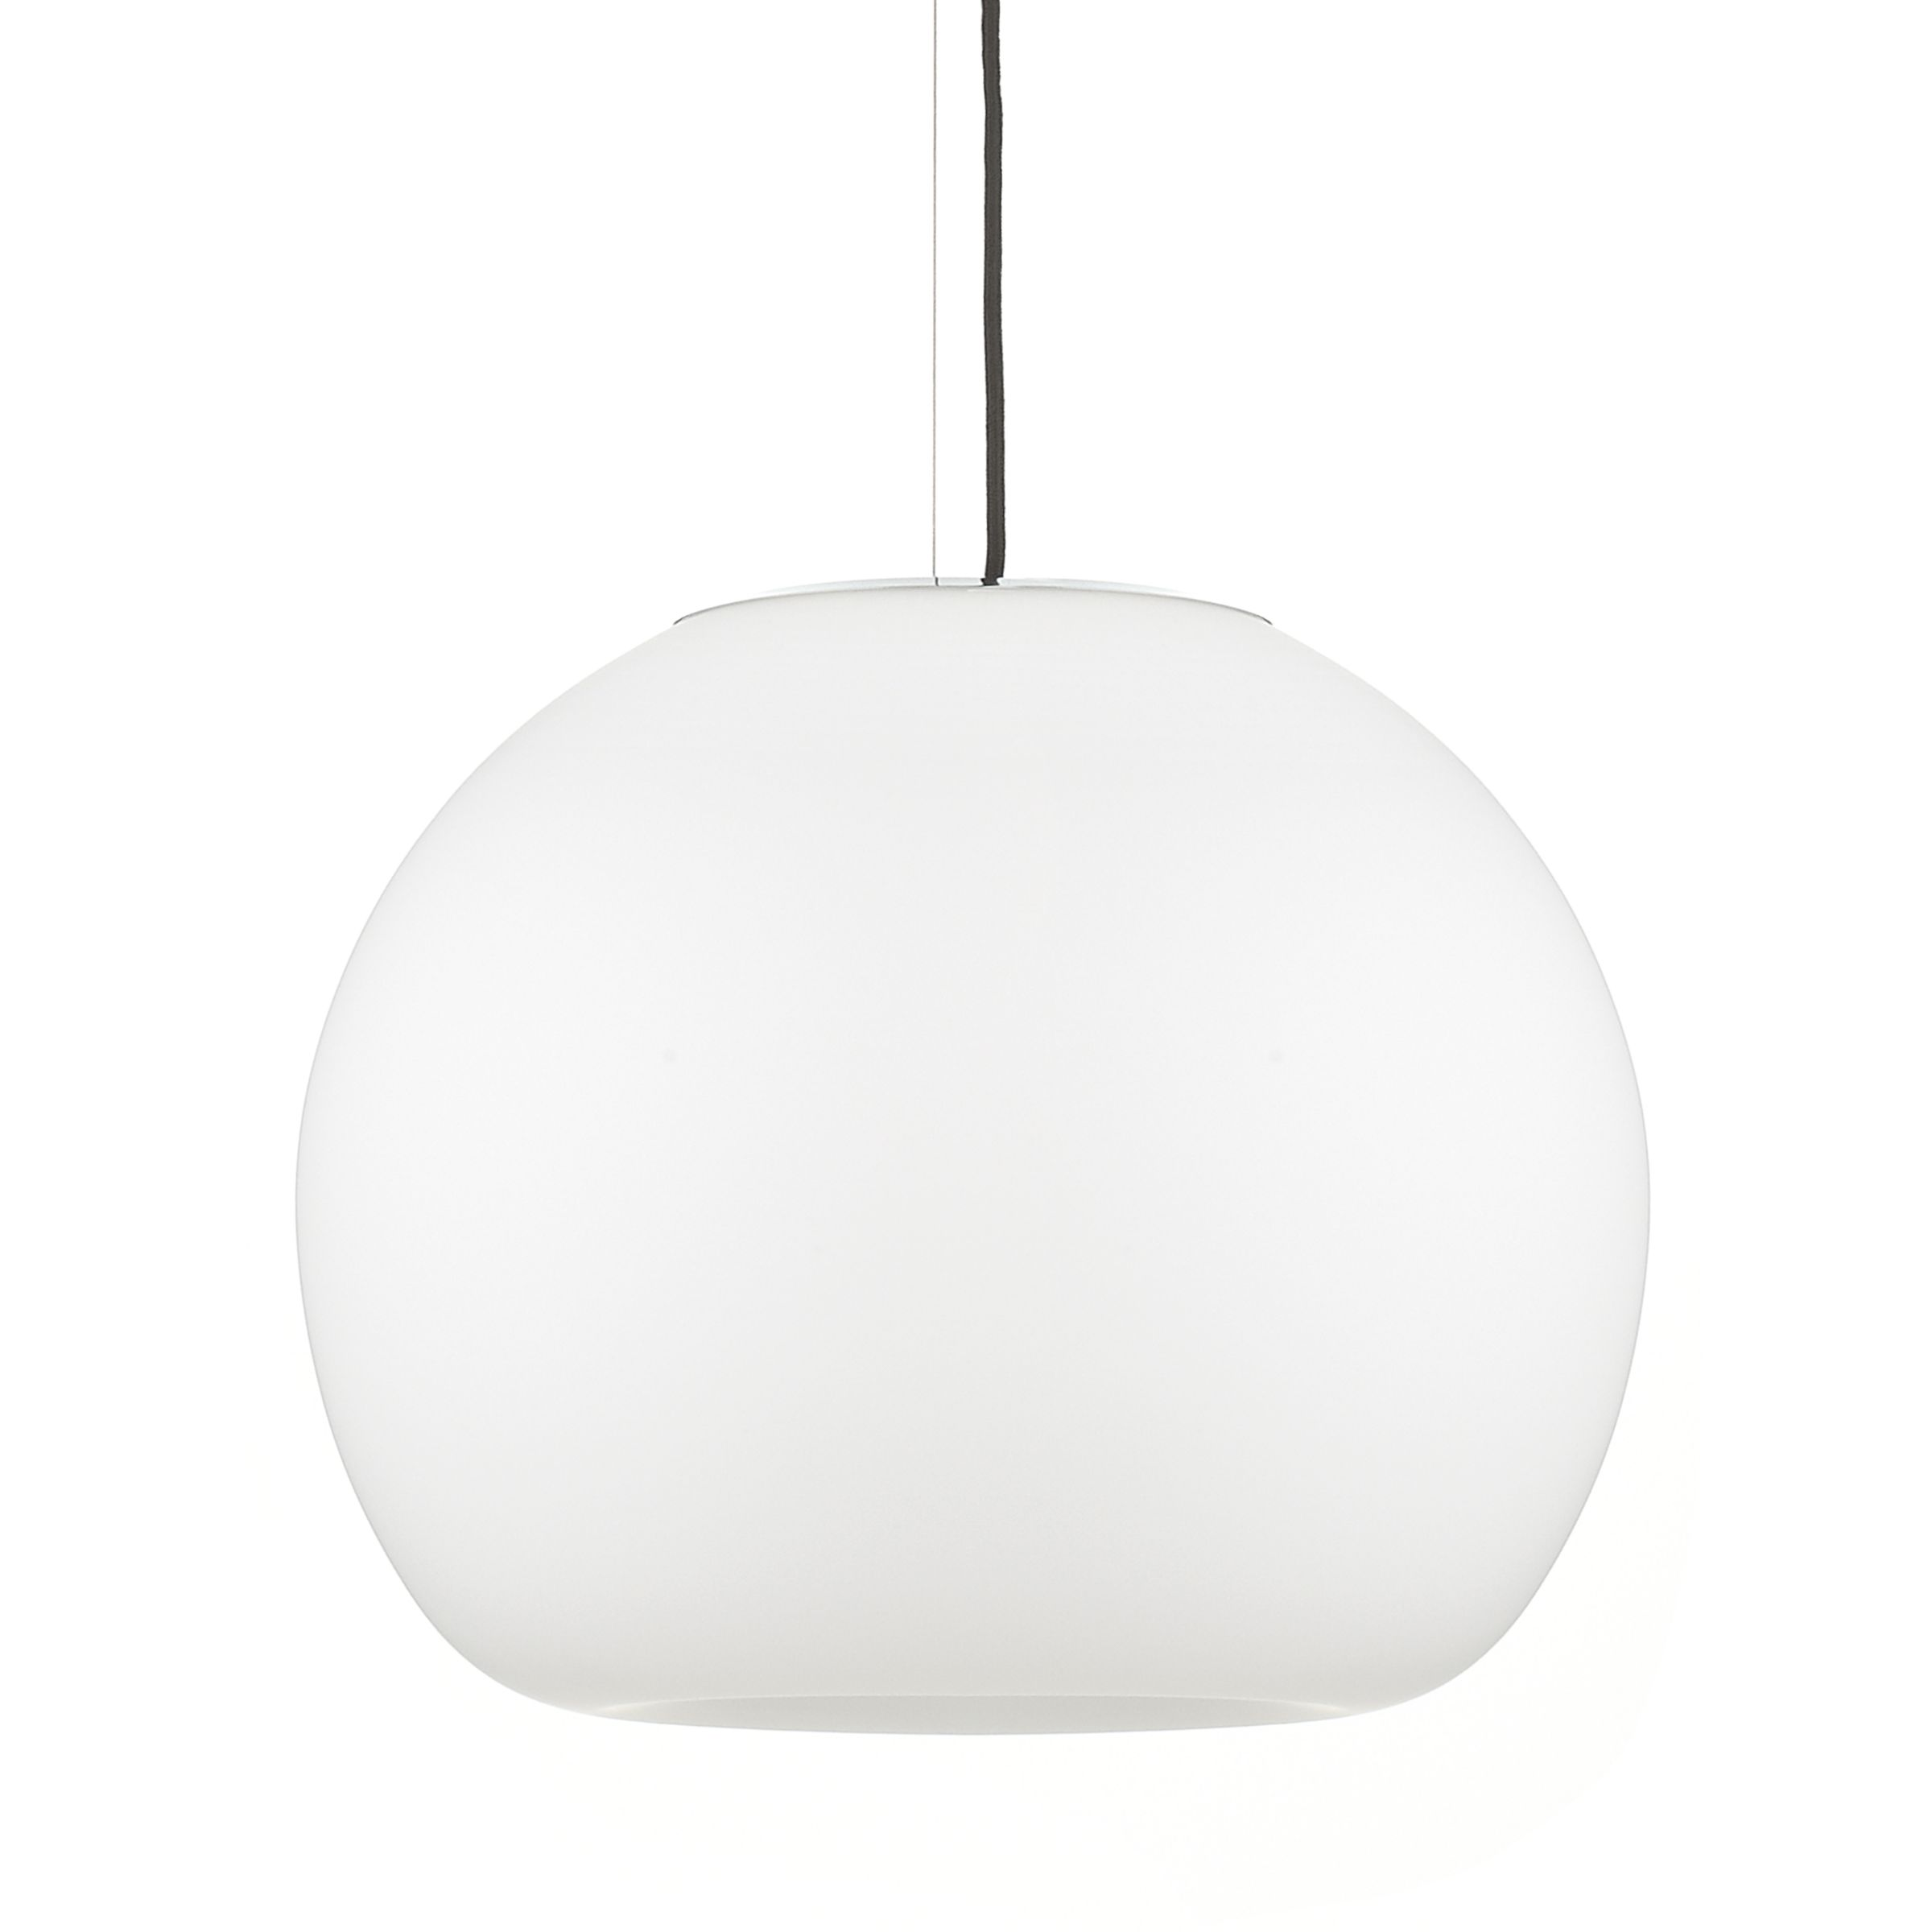 John Lewis White Ceiling Lights : John lewis ceiling lights